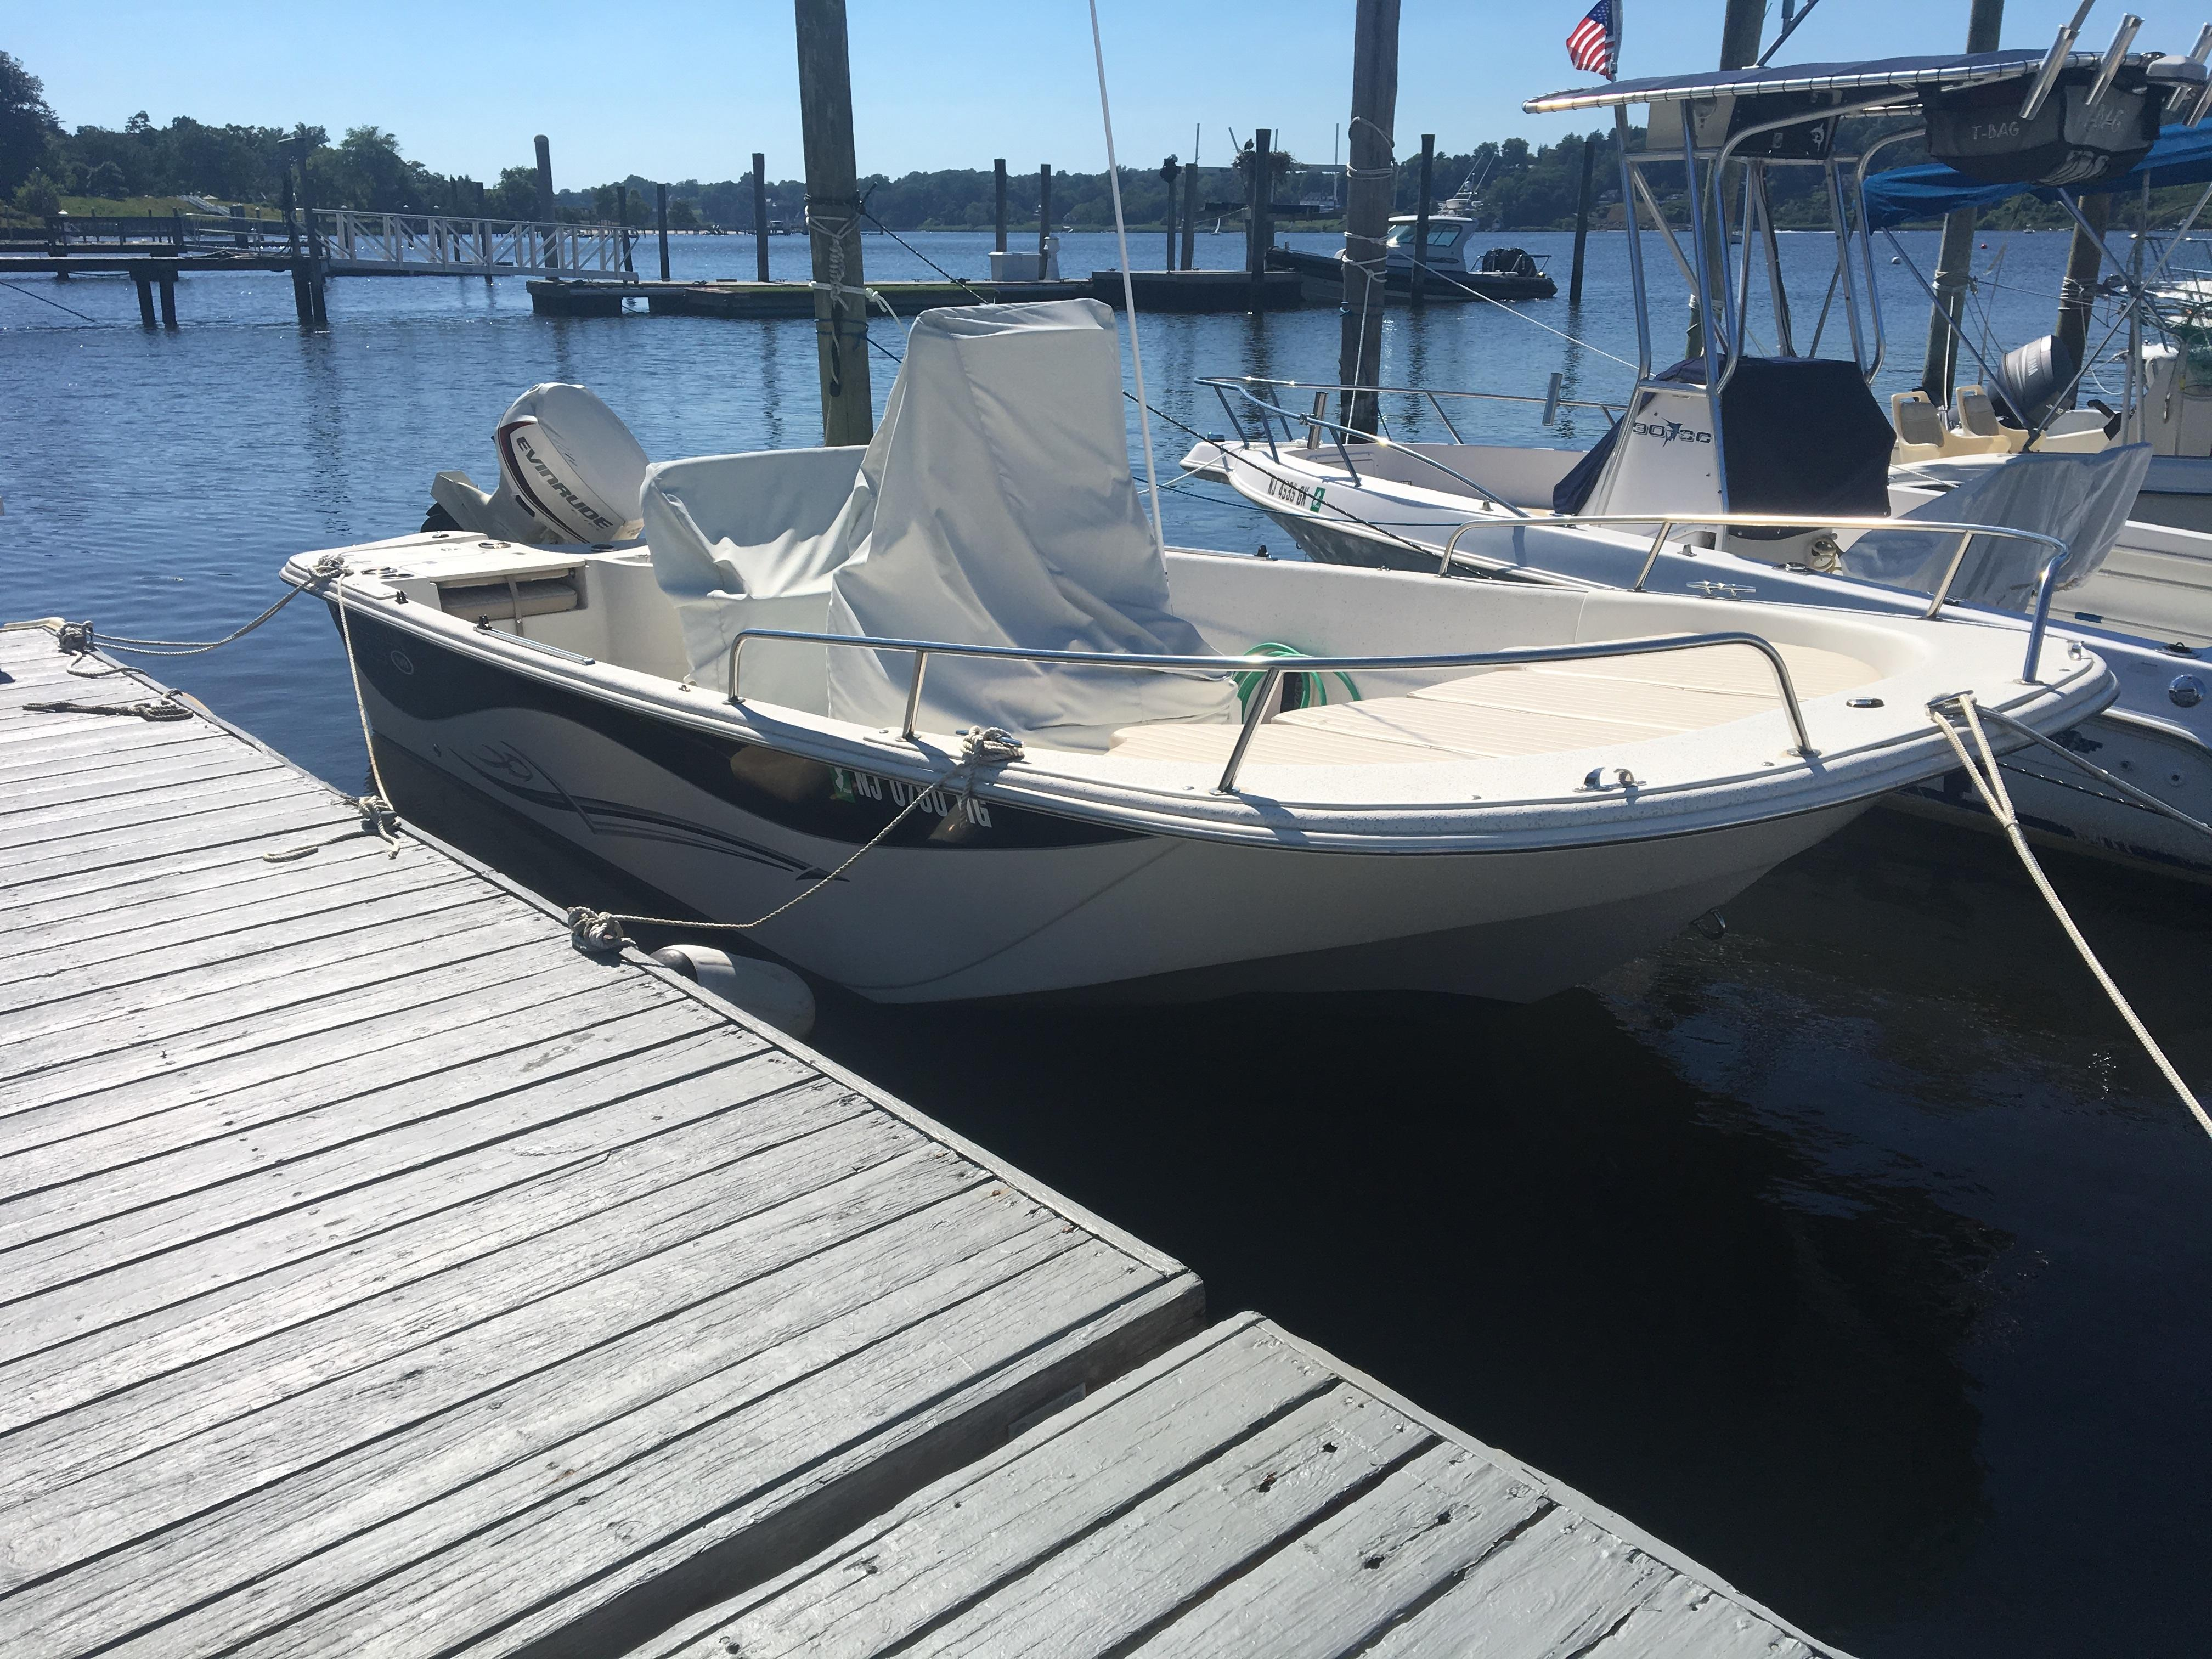 98 Carolina Skiff Wiring Harness Free Download 2014 198 Dlv Power Boat For Sale Www Yachtworld Com At